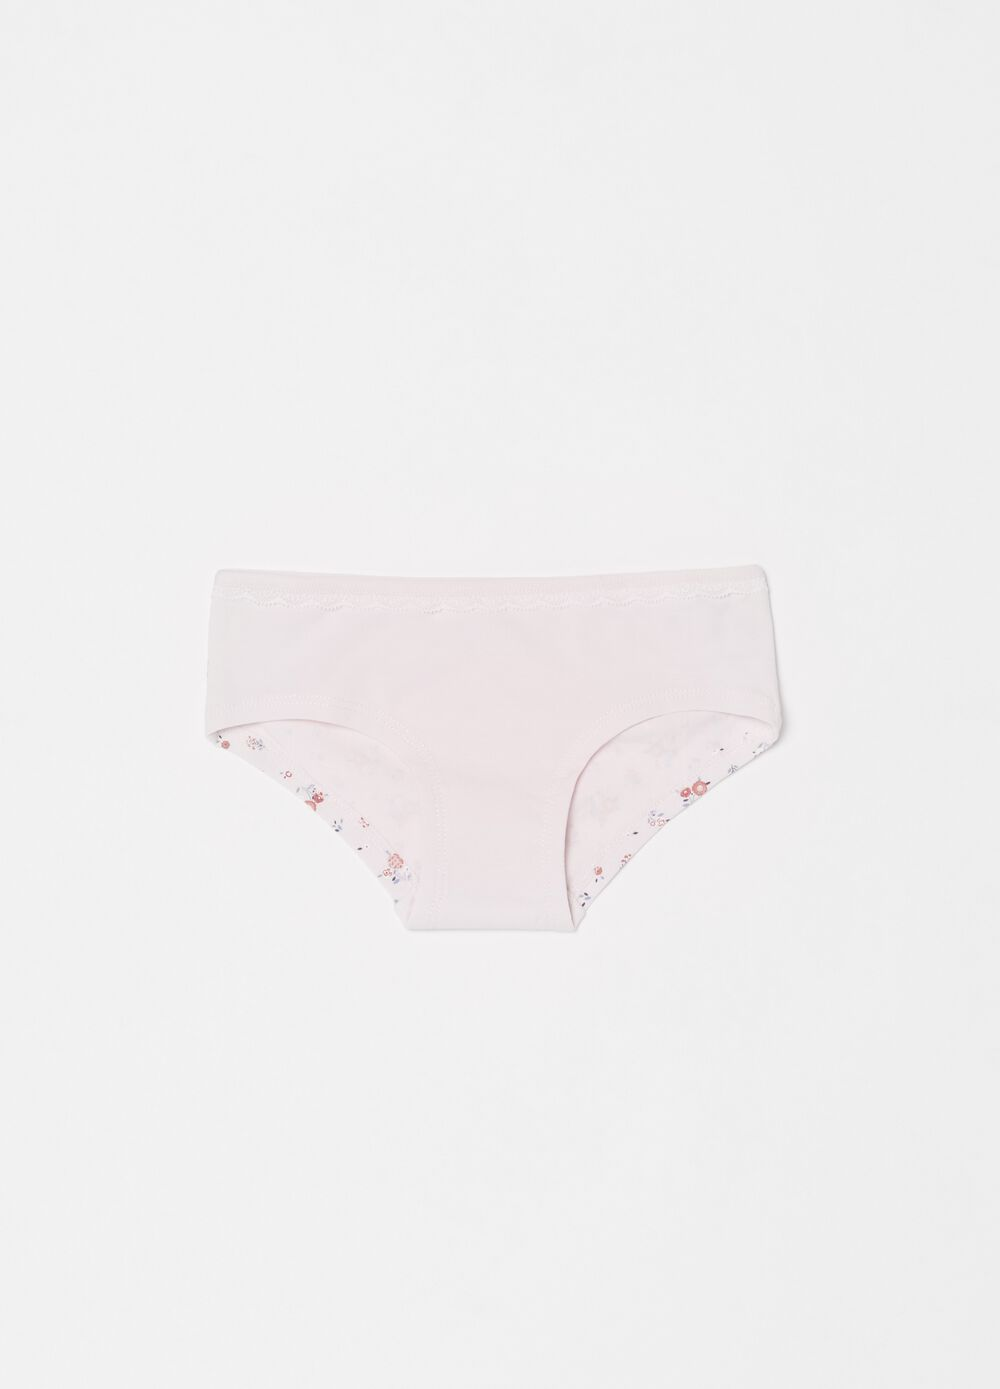 French knickers with floral pattern